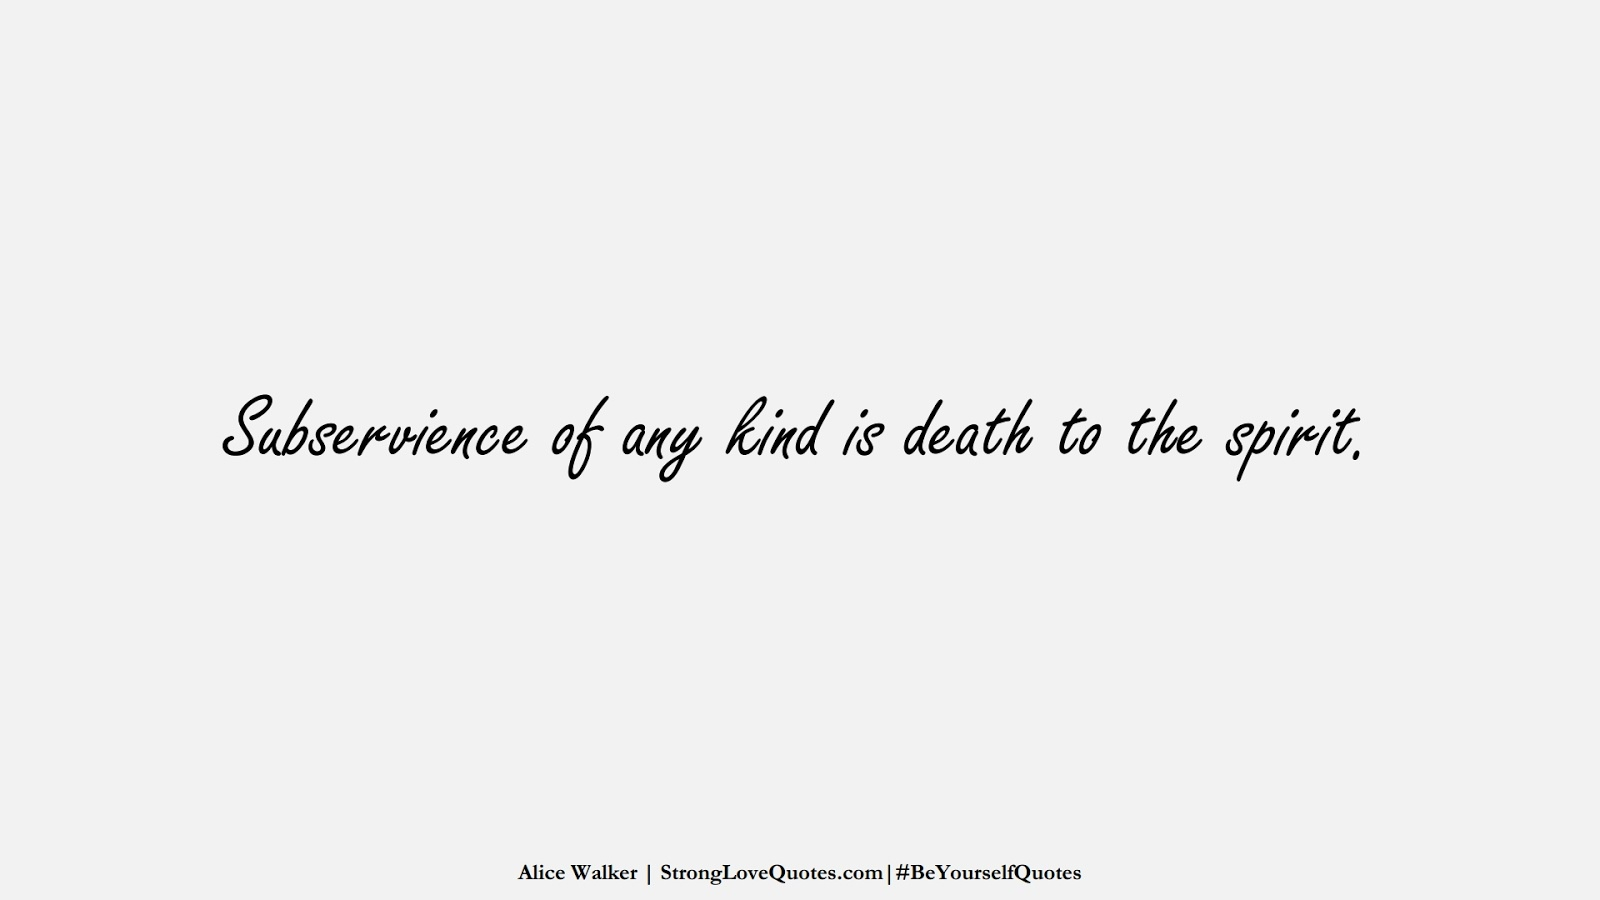 Subservience of any kind is death to the spirit. (Alice Walker);  #BeYourselfQuotes